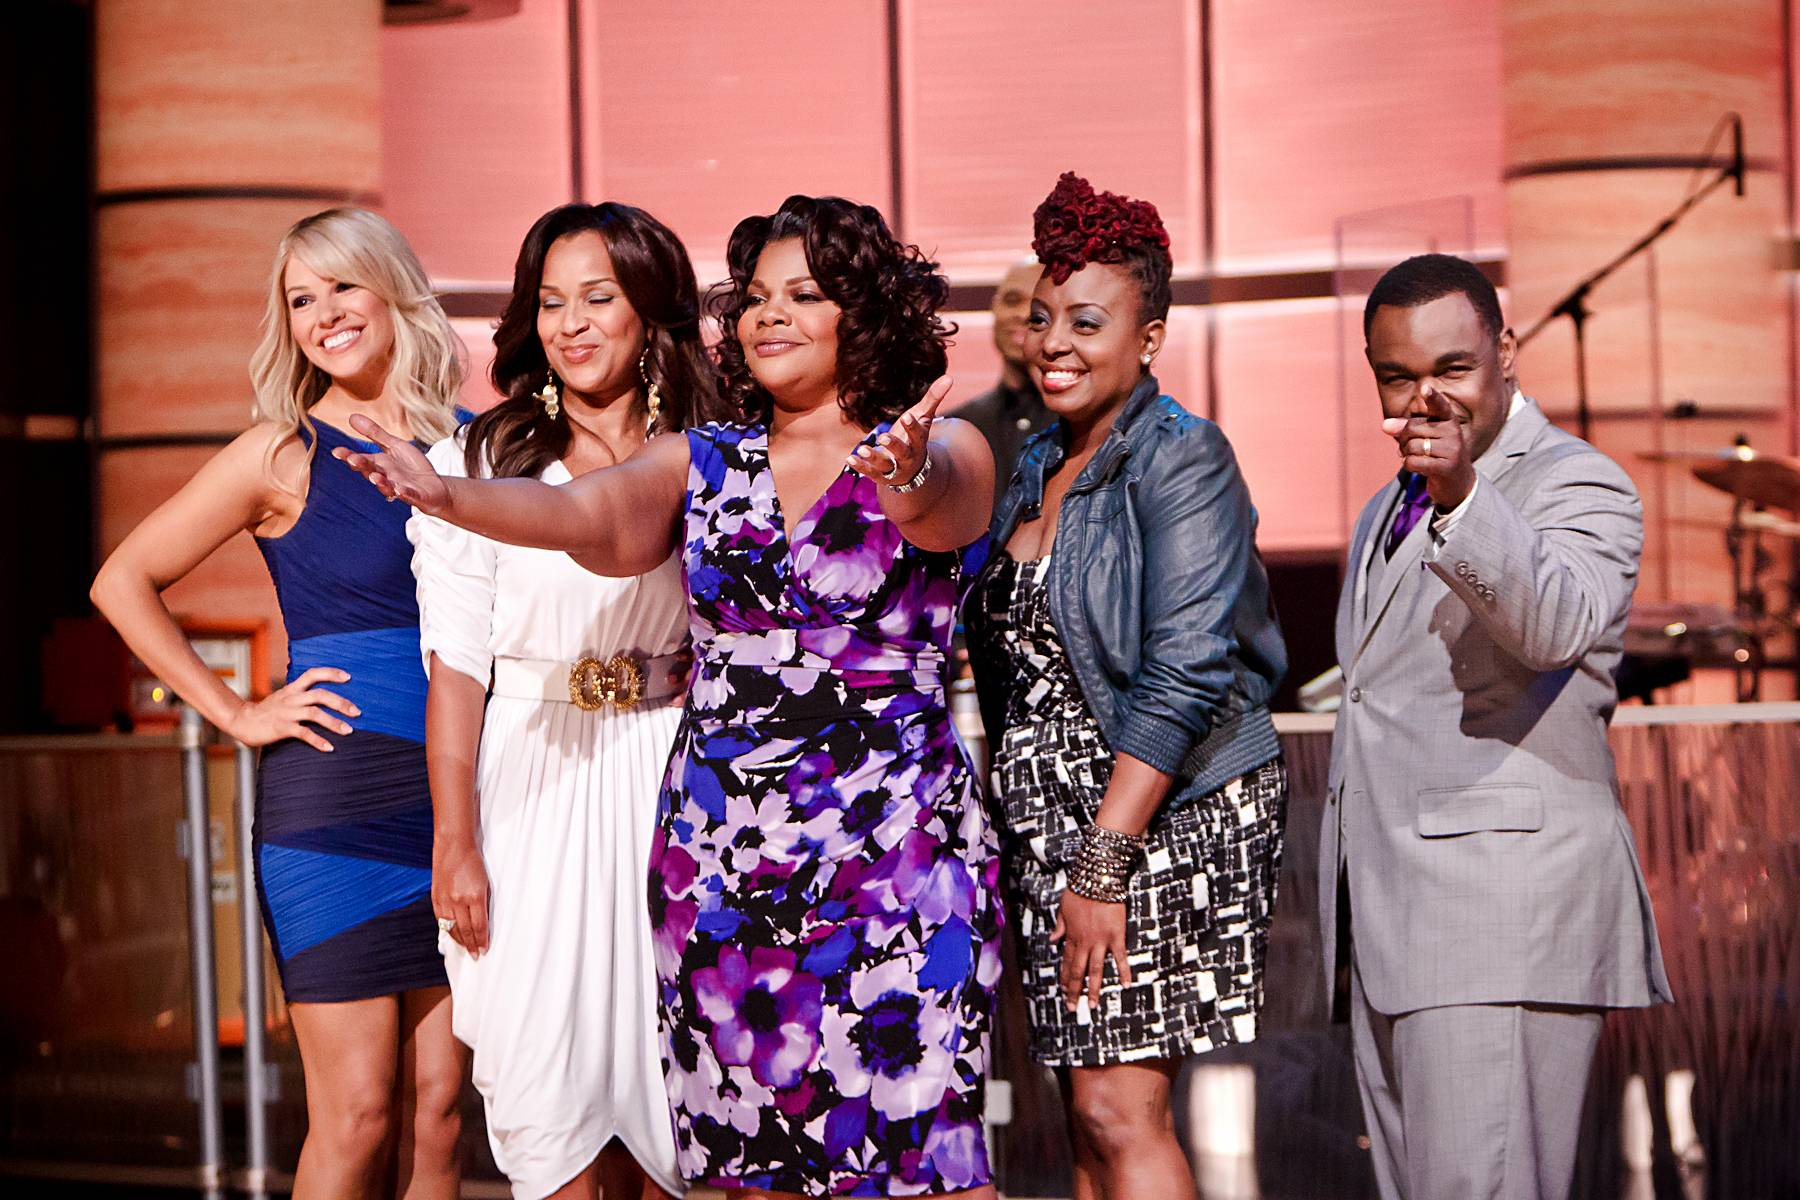 Farewell to Another Great Episode! - From left: Charity Shea, LisaRaye McCoy, Mo'Nique, Ledisi and Rodney Perry.(Photo: Darnell Williams/BET)